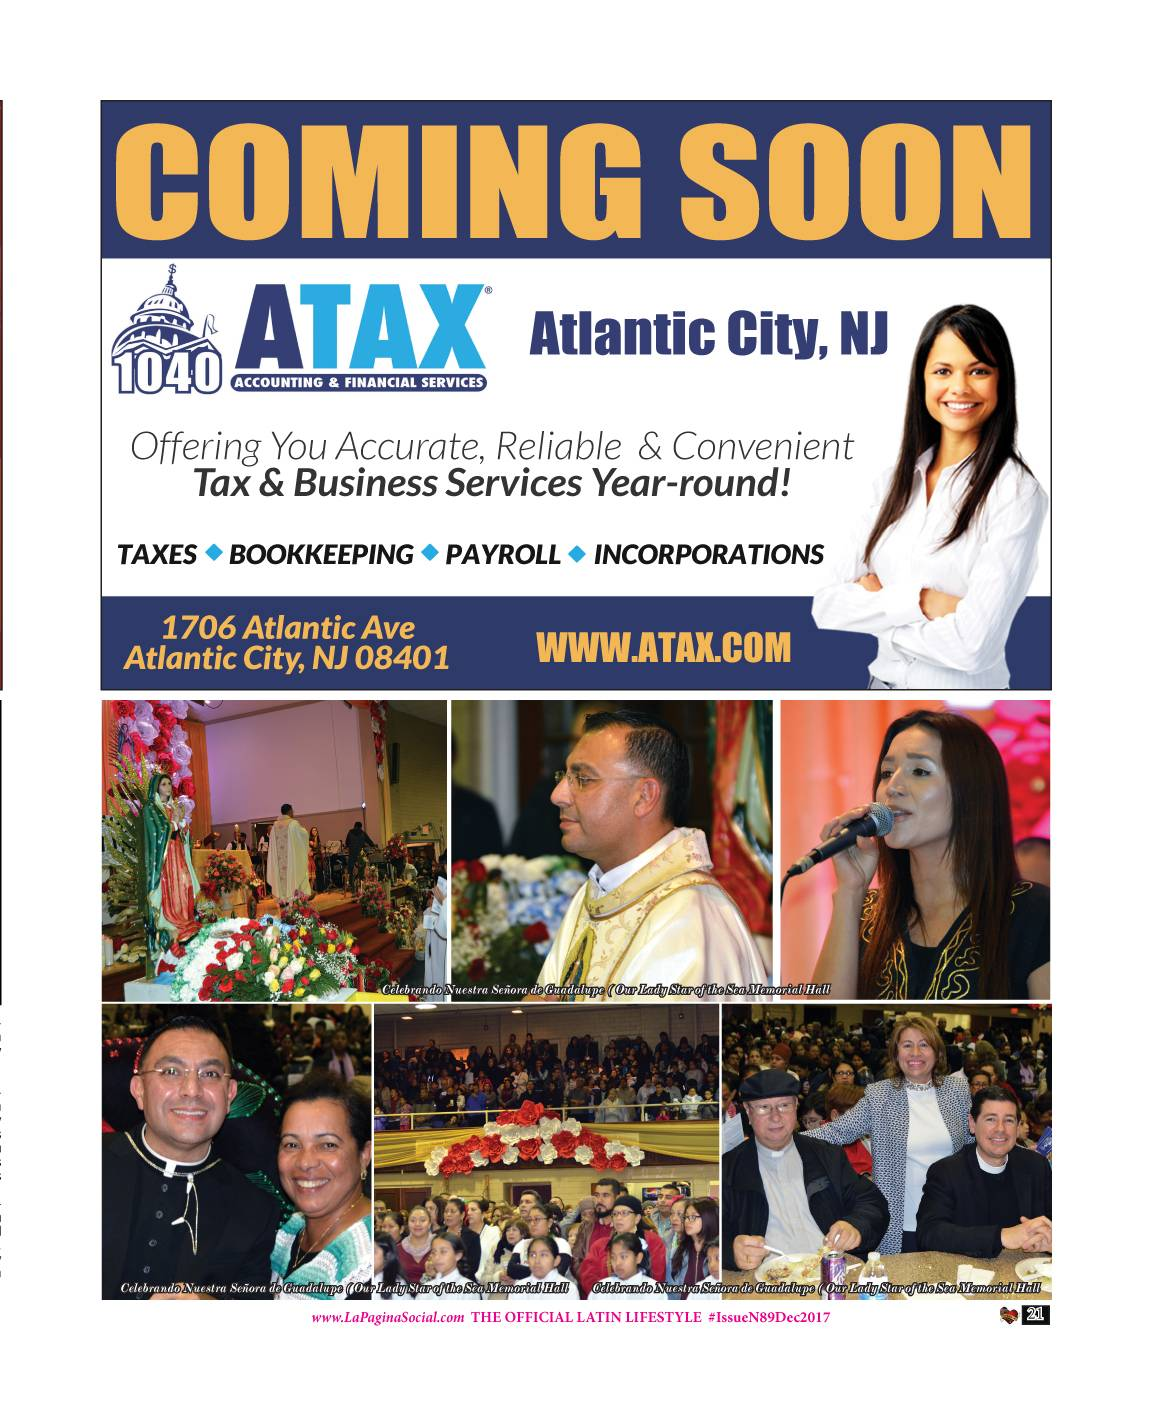 ATAX ACCOUNTING AND FINANCIAL SERVICES